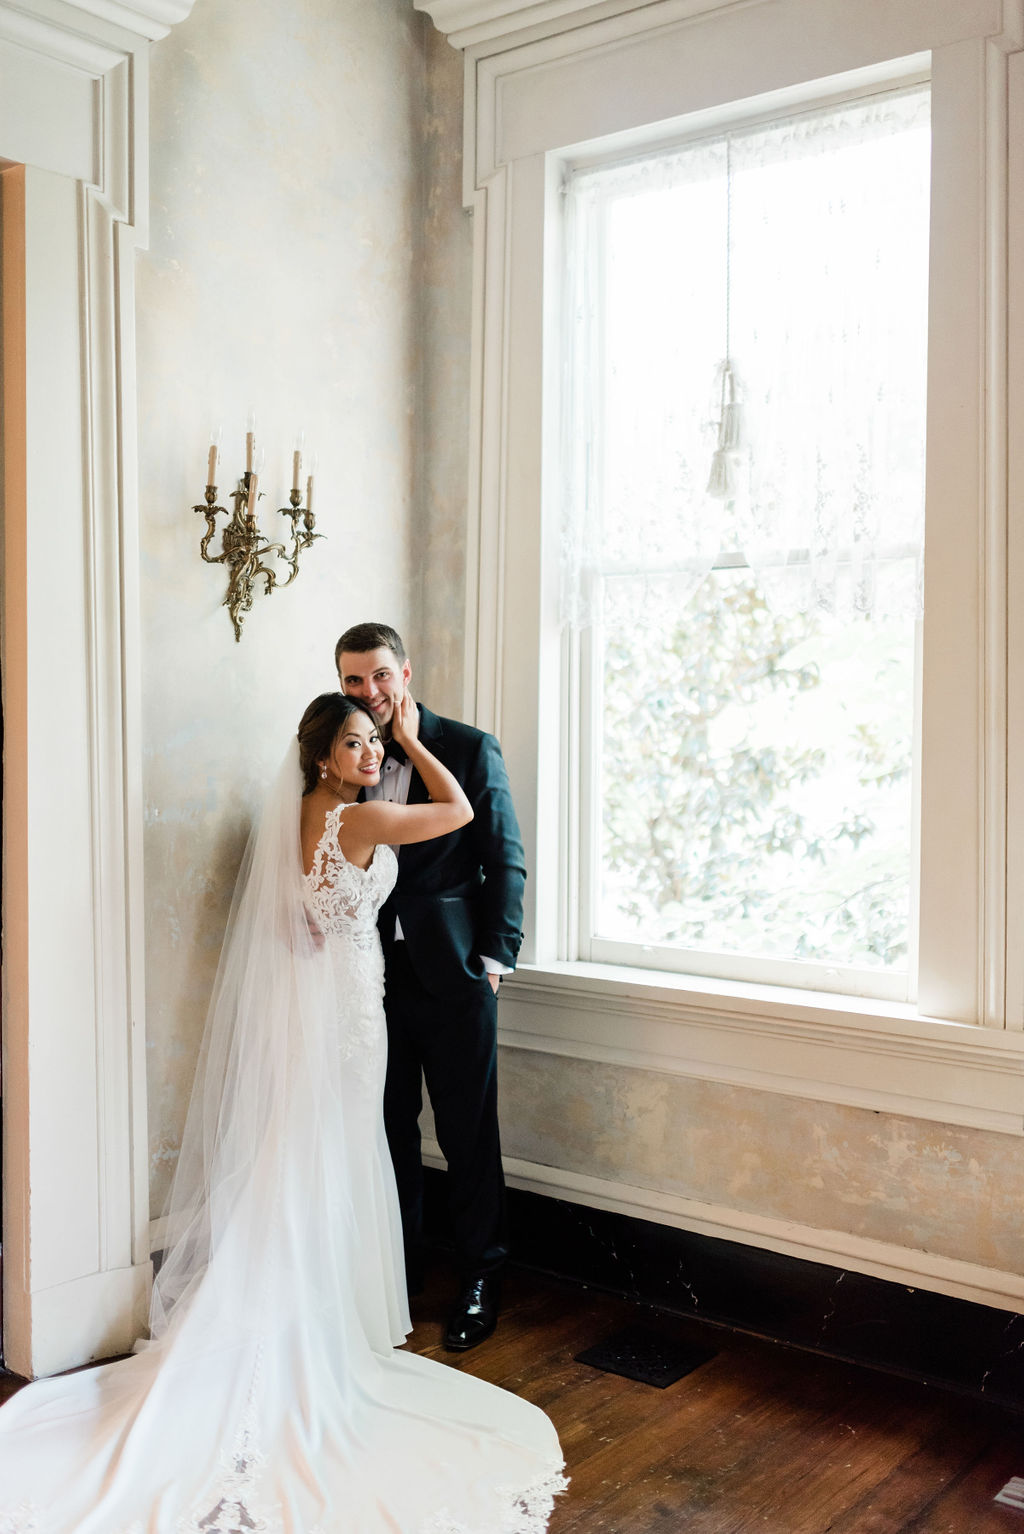 Wedding portrait by Nashville wedding photographer Maria Gloer Photography